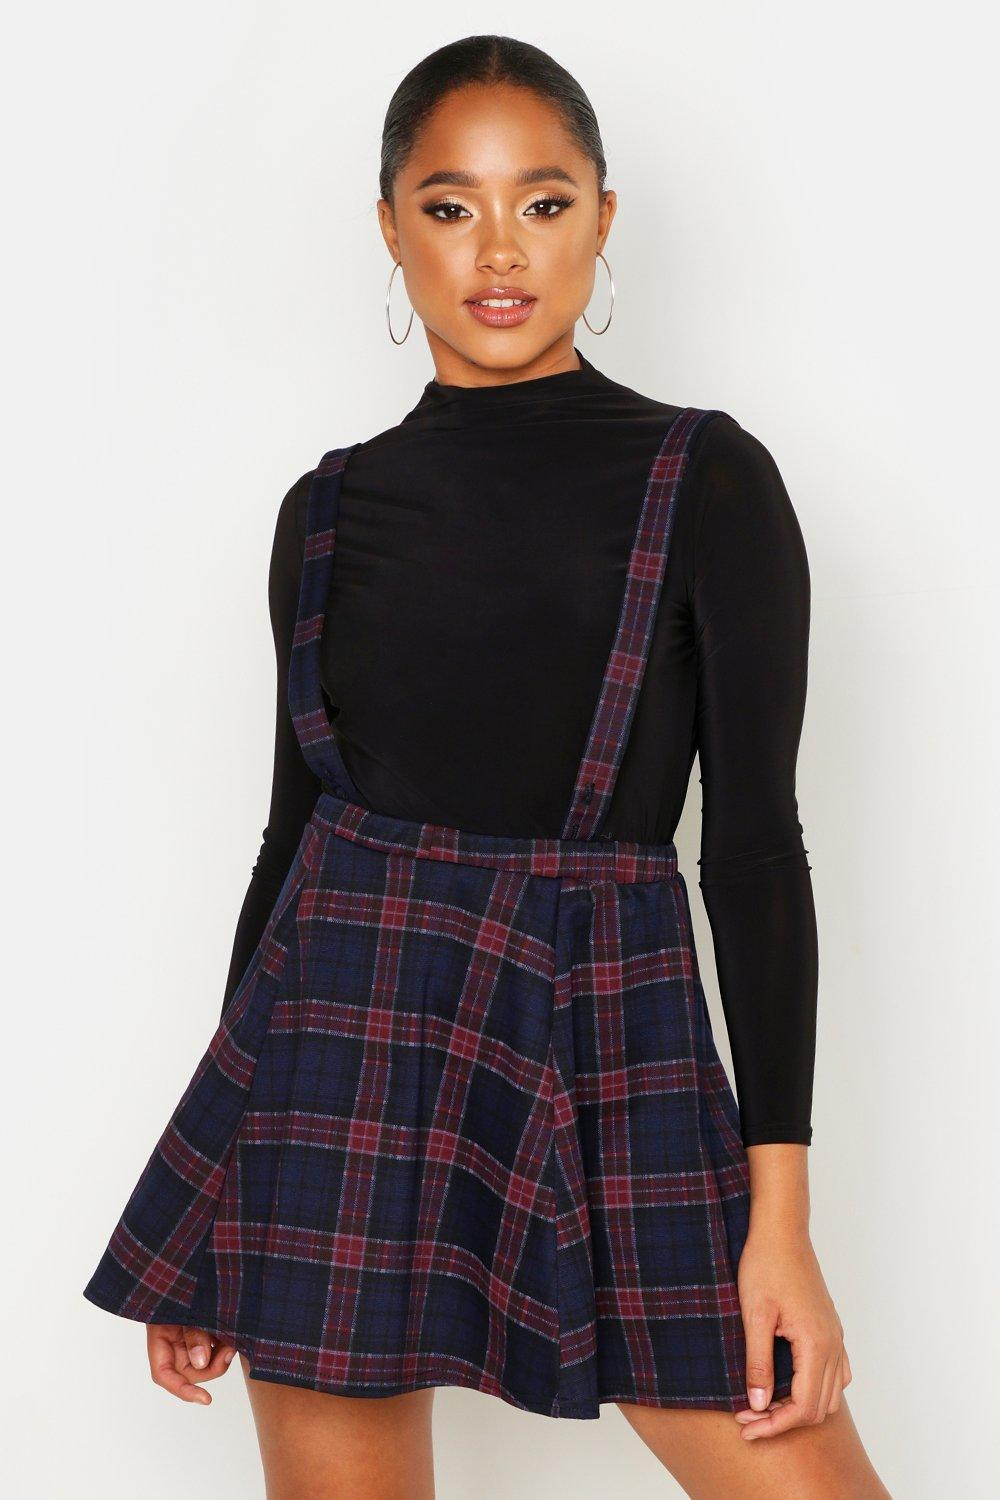 cec52a7fc6 Womens Navy Tartan Check Pinafore Skirt. Hover to zoom